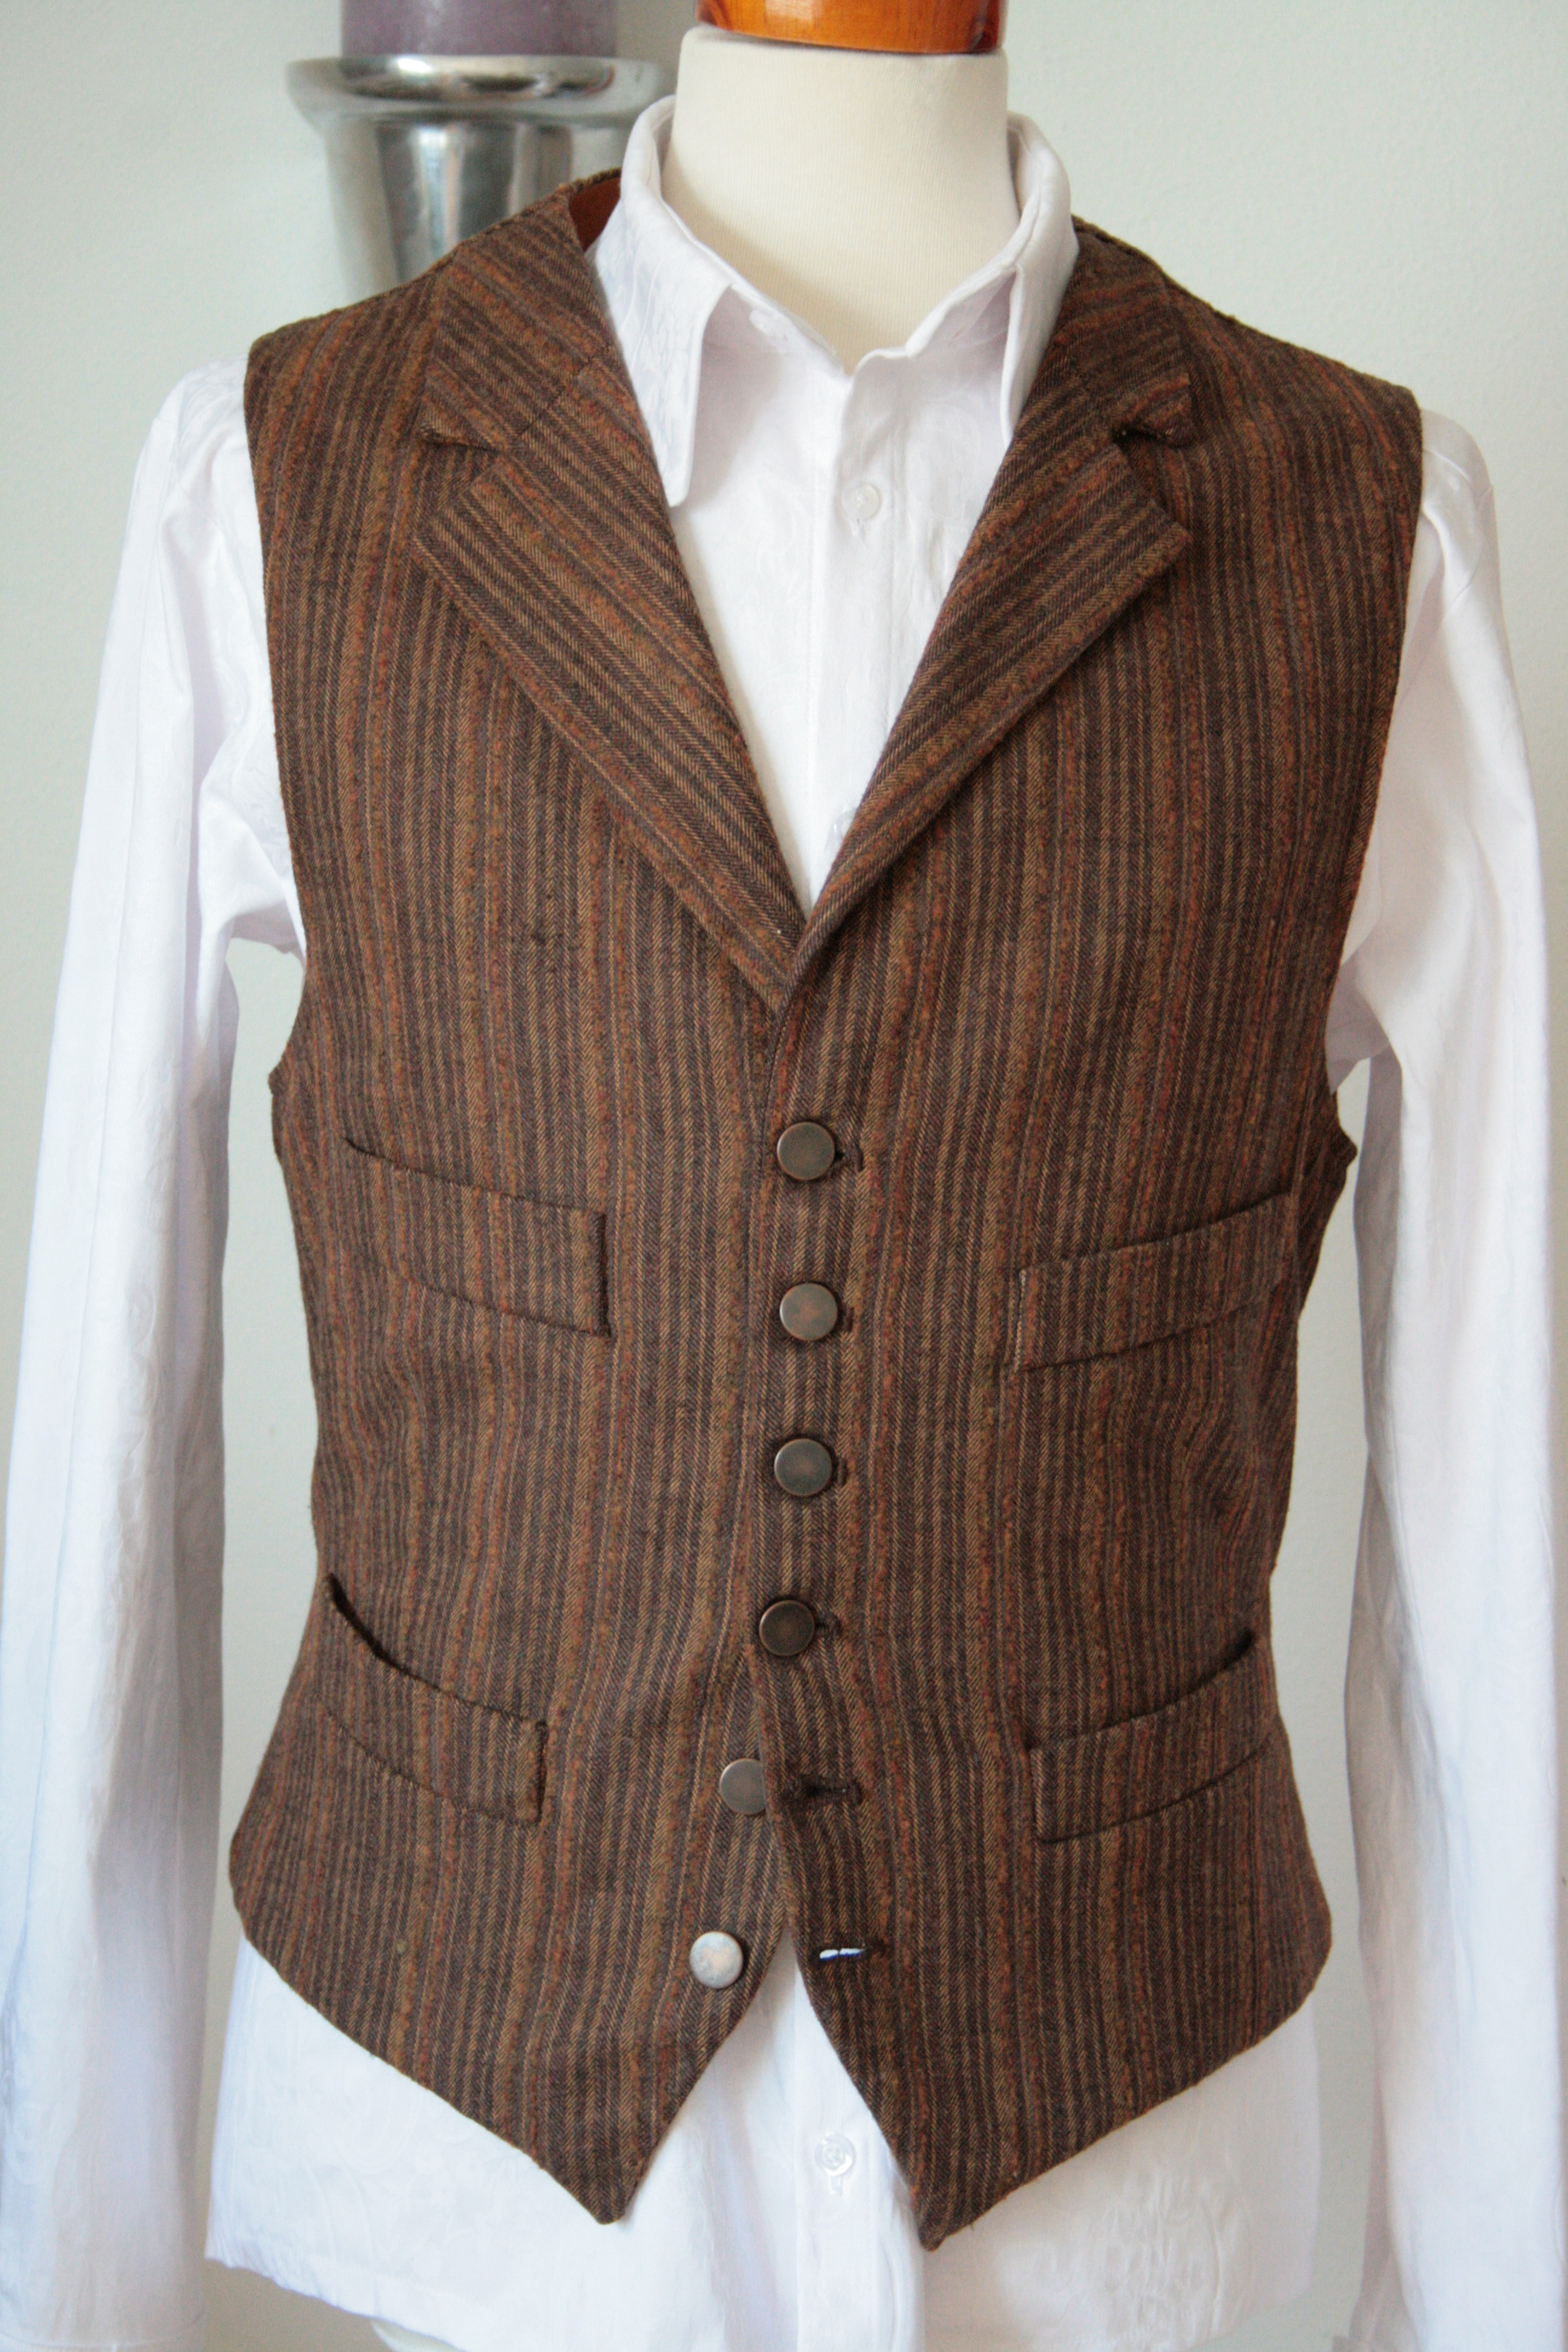 This patterned jacquard waistcoat is cut with a five button front Epoint EGE1B Exporters Waistcoat Paisley Microfiber Vest Pre-Tied Bow Tie by. by Epoint. $ - $ $ 14 $ 24 99 Prime. FREE Shipping on eligible orders. Some sizes/colors are Prime eligible. 4 out of 5 stars